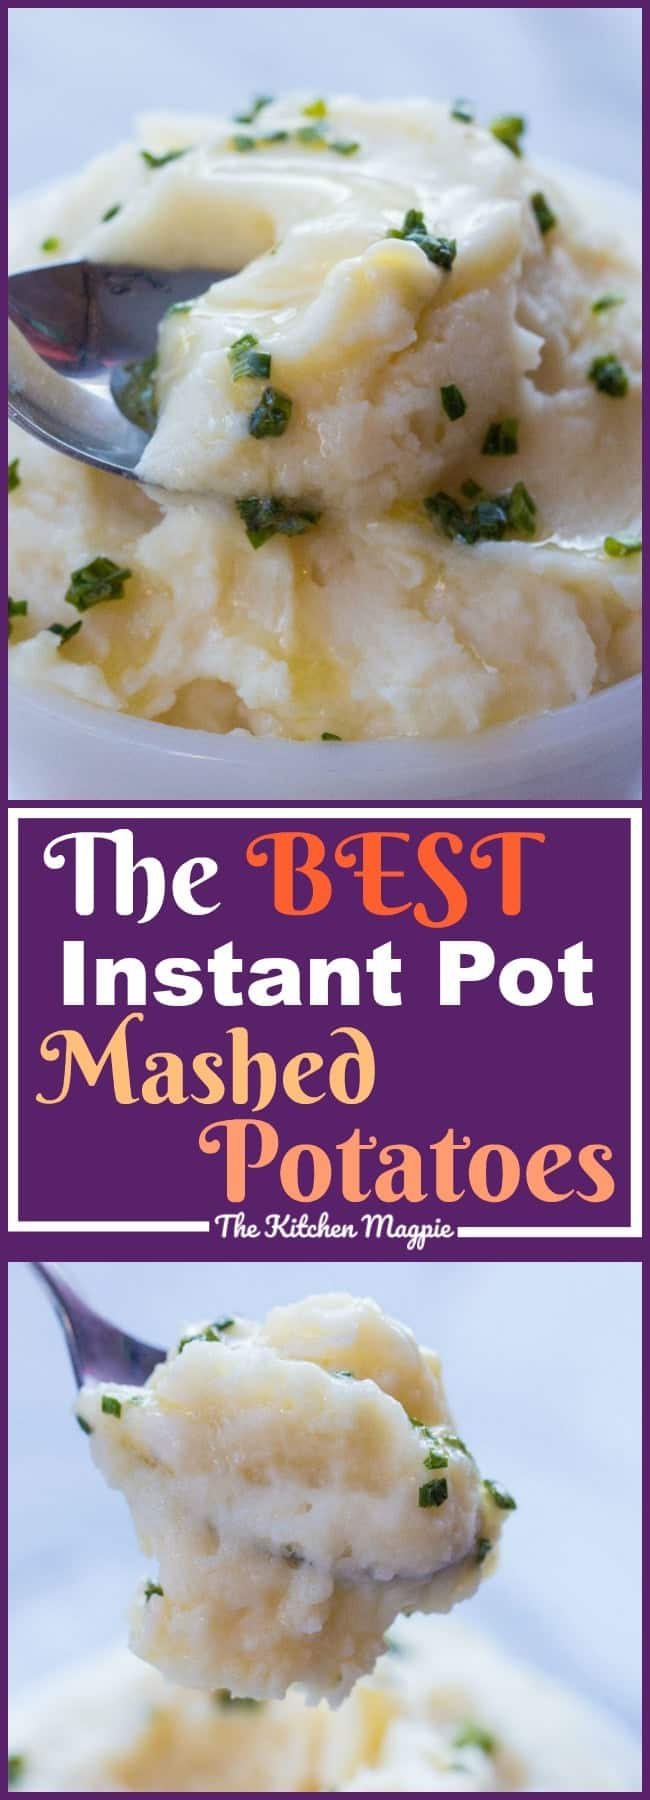 the best instant pot mashed potatoes the kitchen magpie. Black Bedroom Furniture Sets. Home Design Ideas